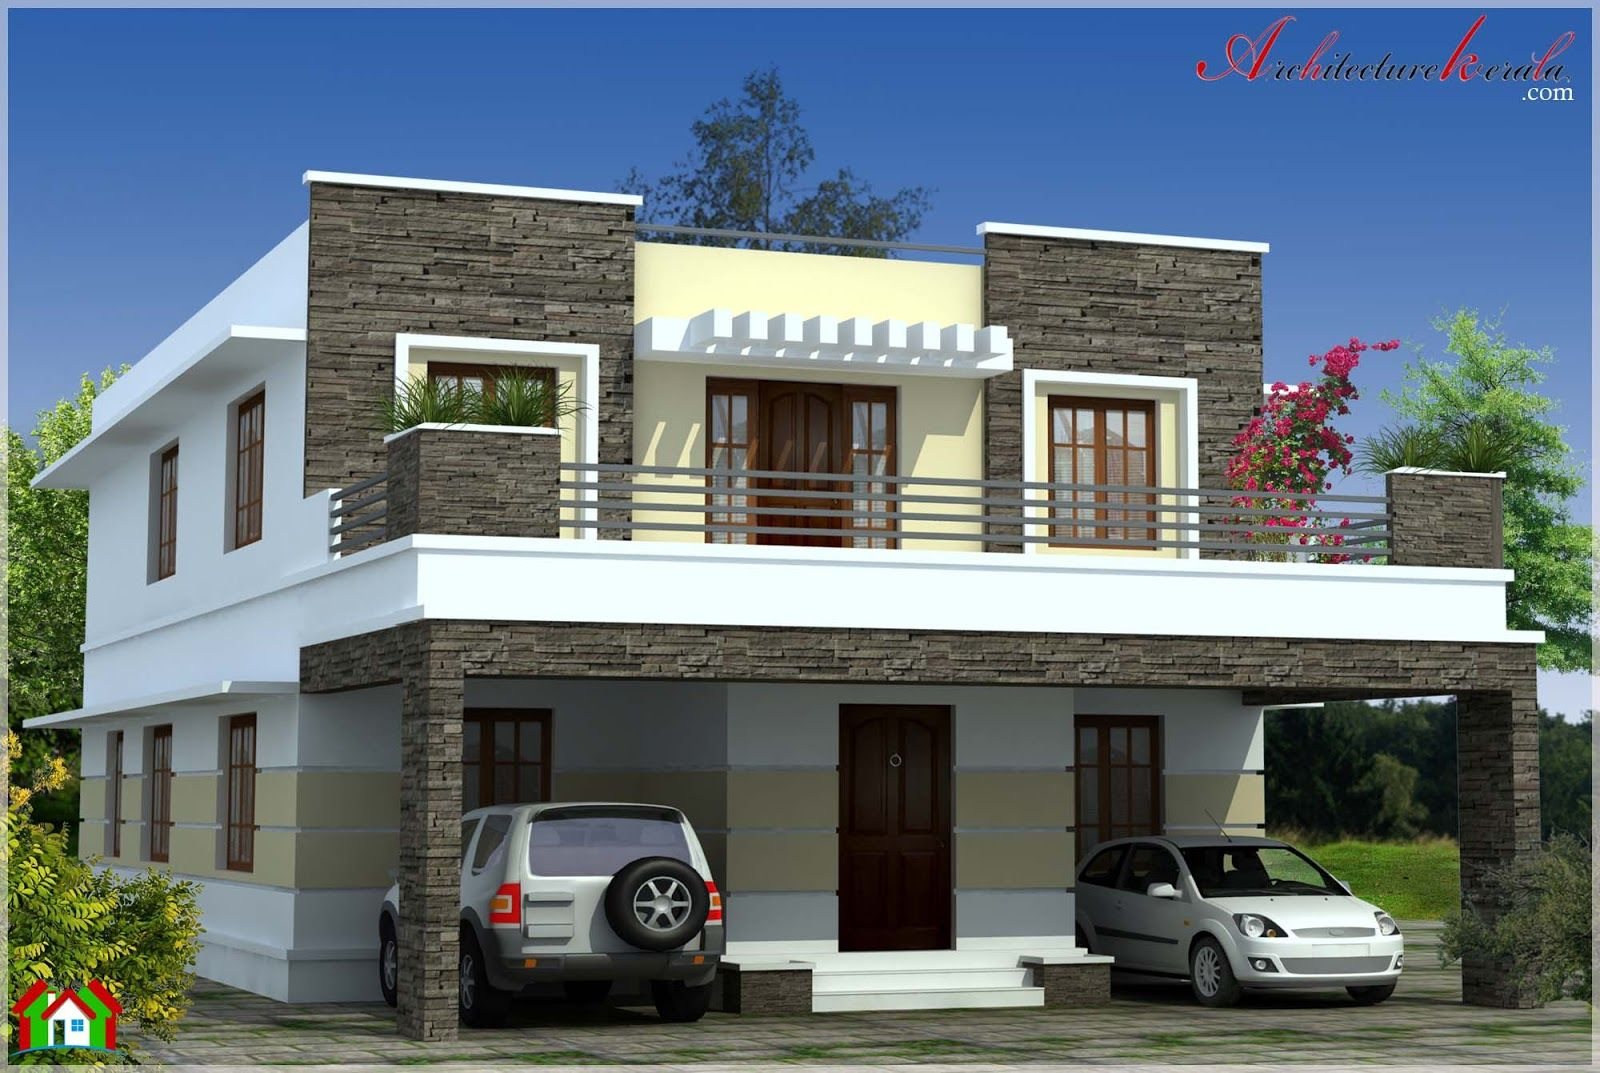 SIMPLE CONTEMPORARY STYLE KERALA HOUSE ELEVATION | Beautiful Homes and Vacation Spots in 2019 ...